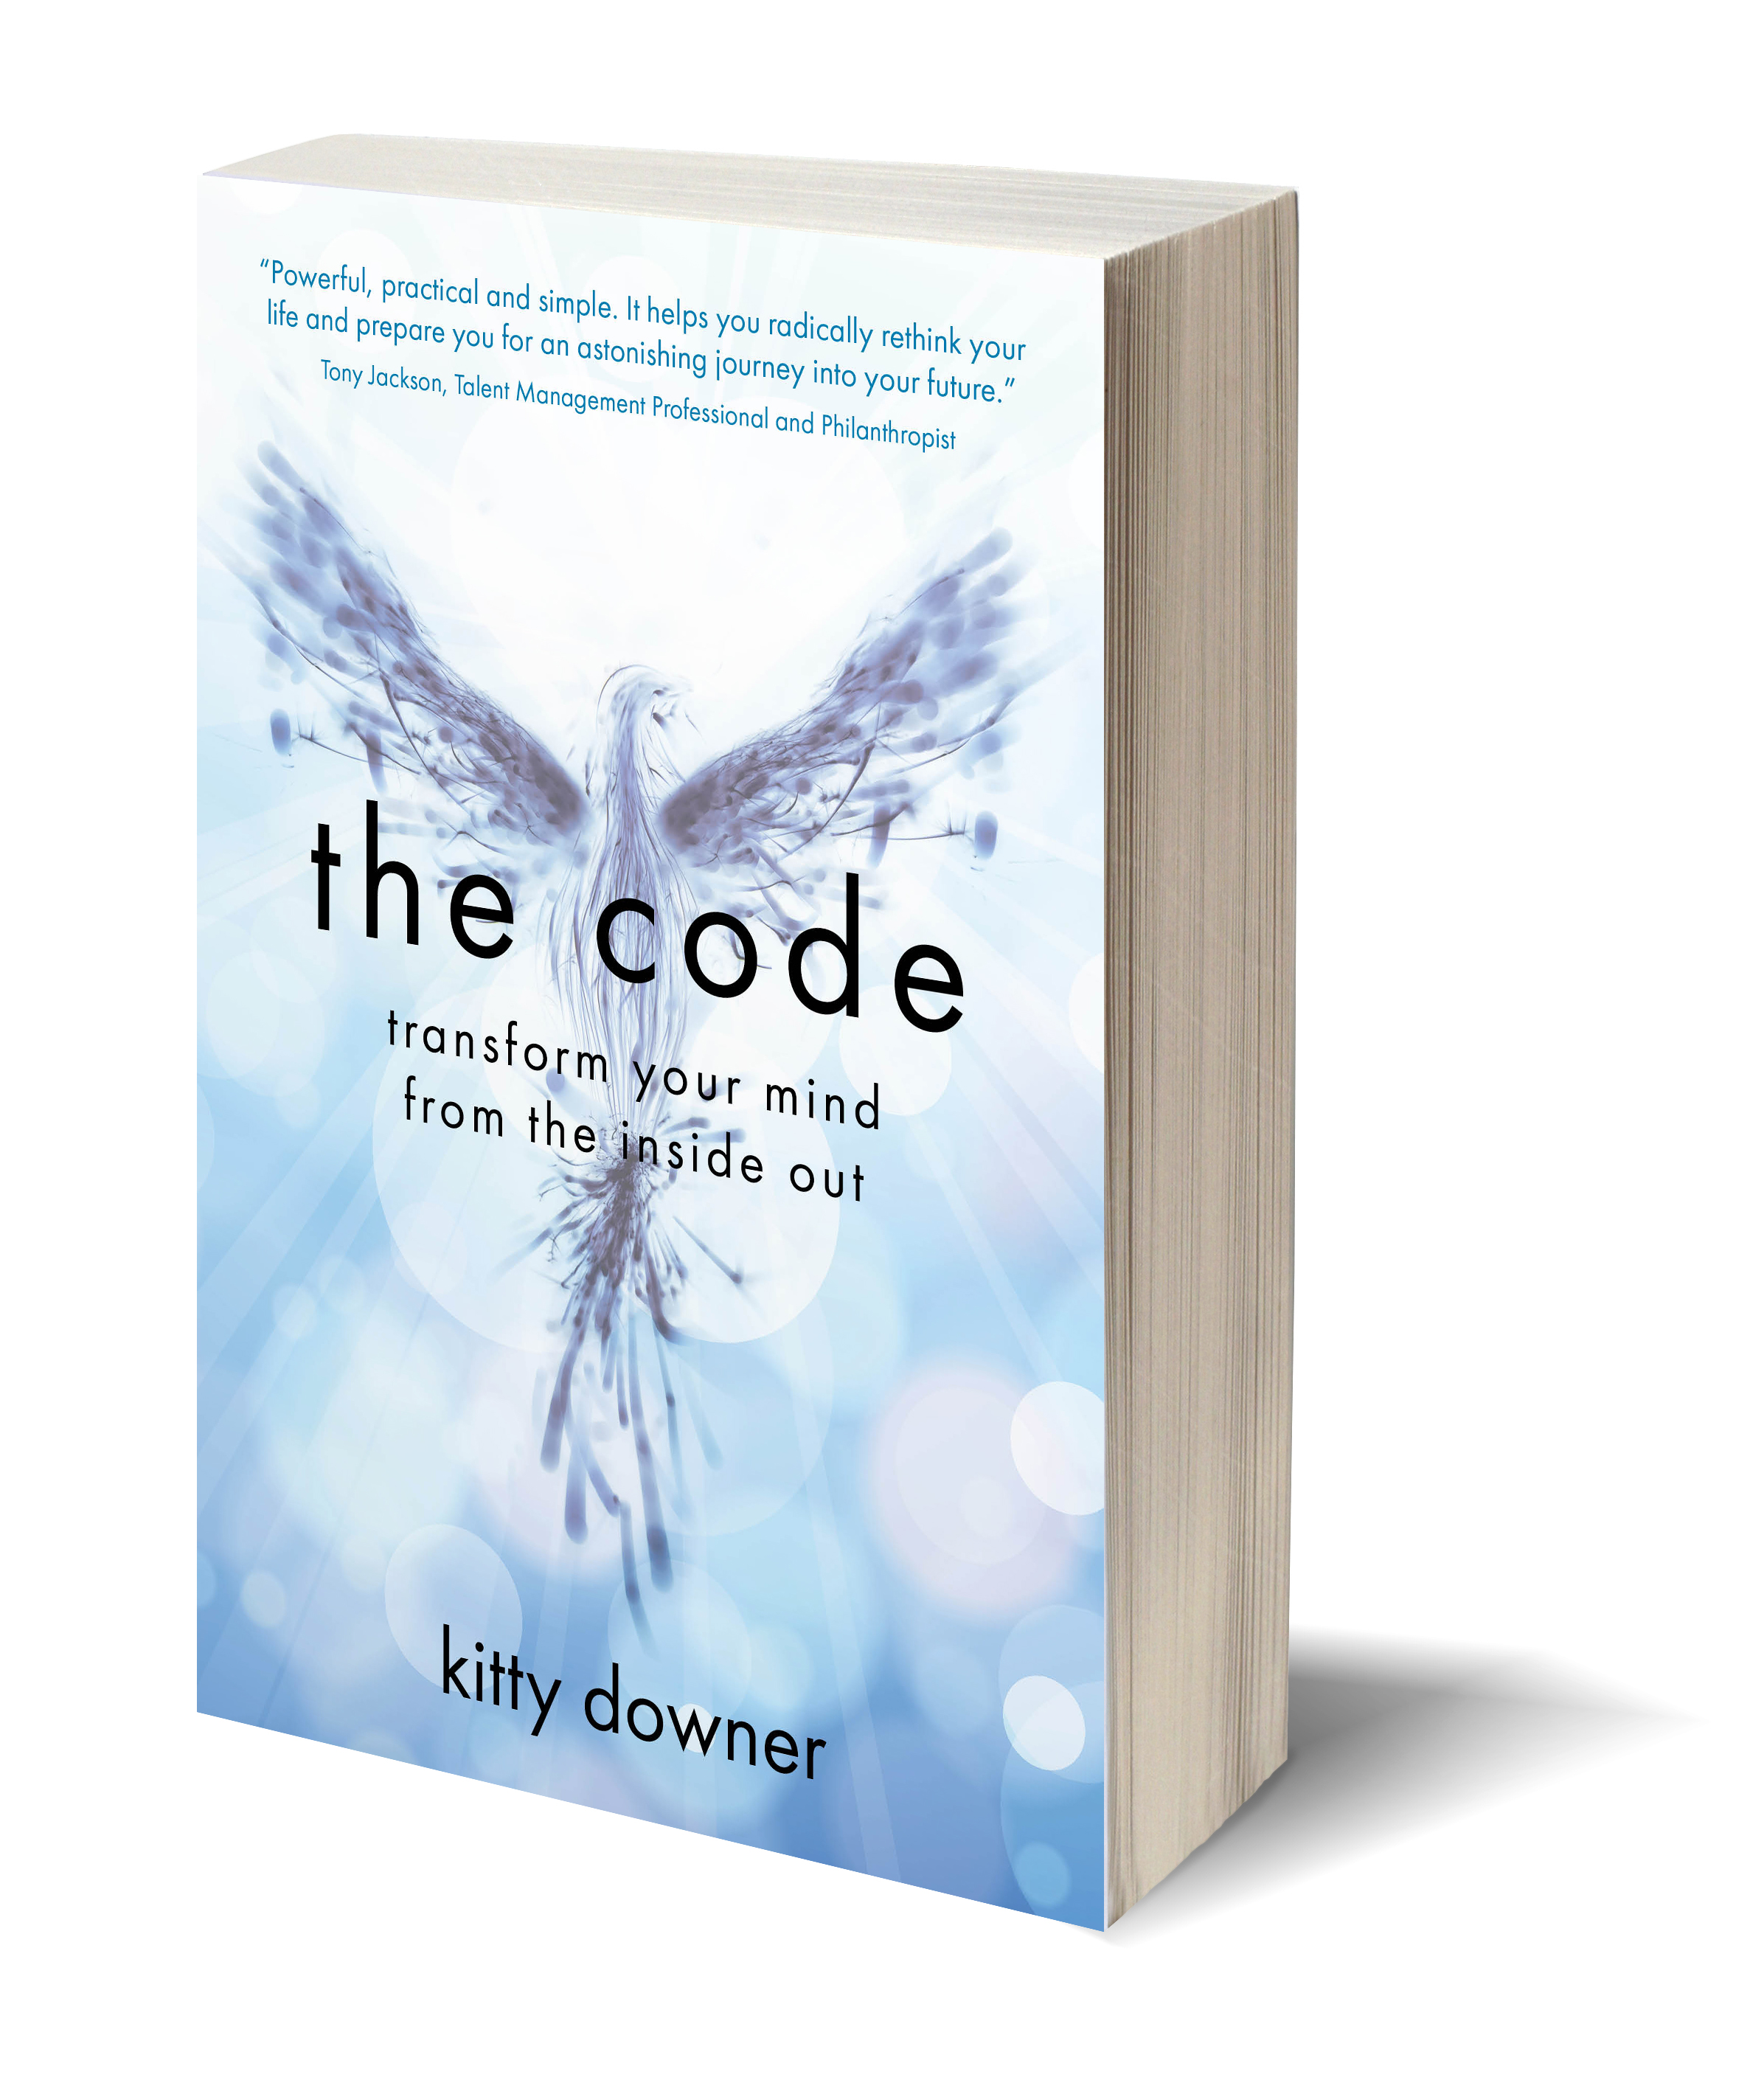 The Code - transform your mind from the inside out